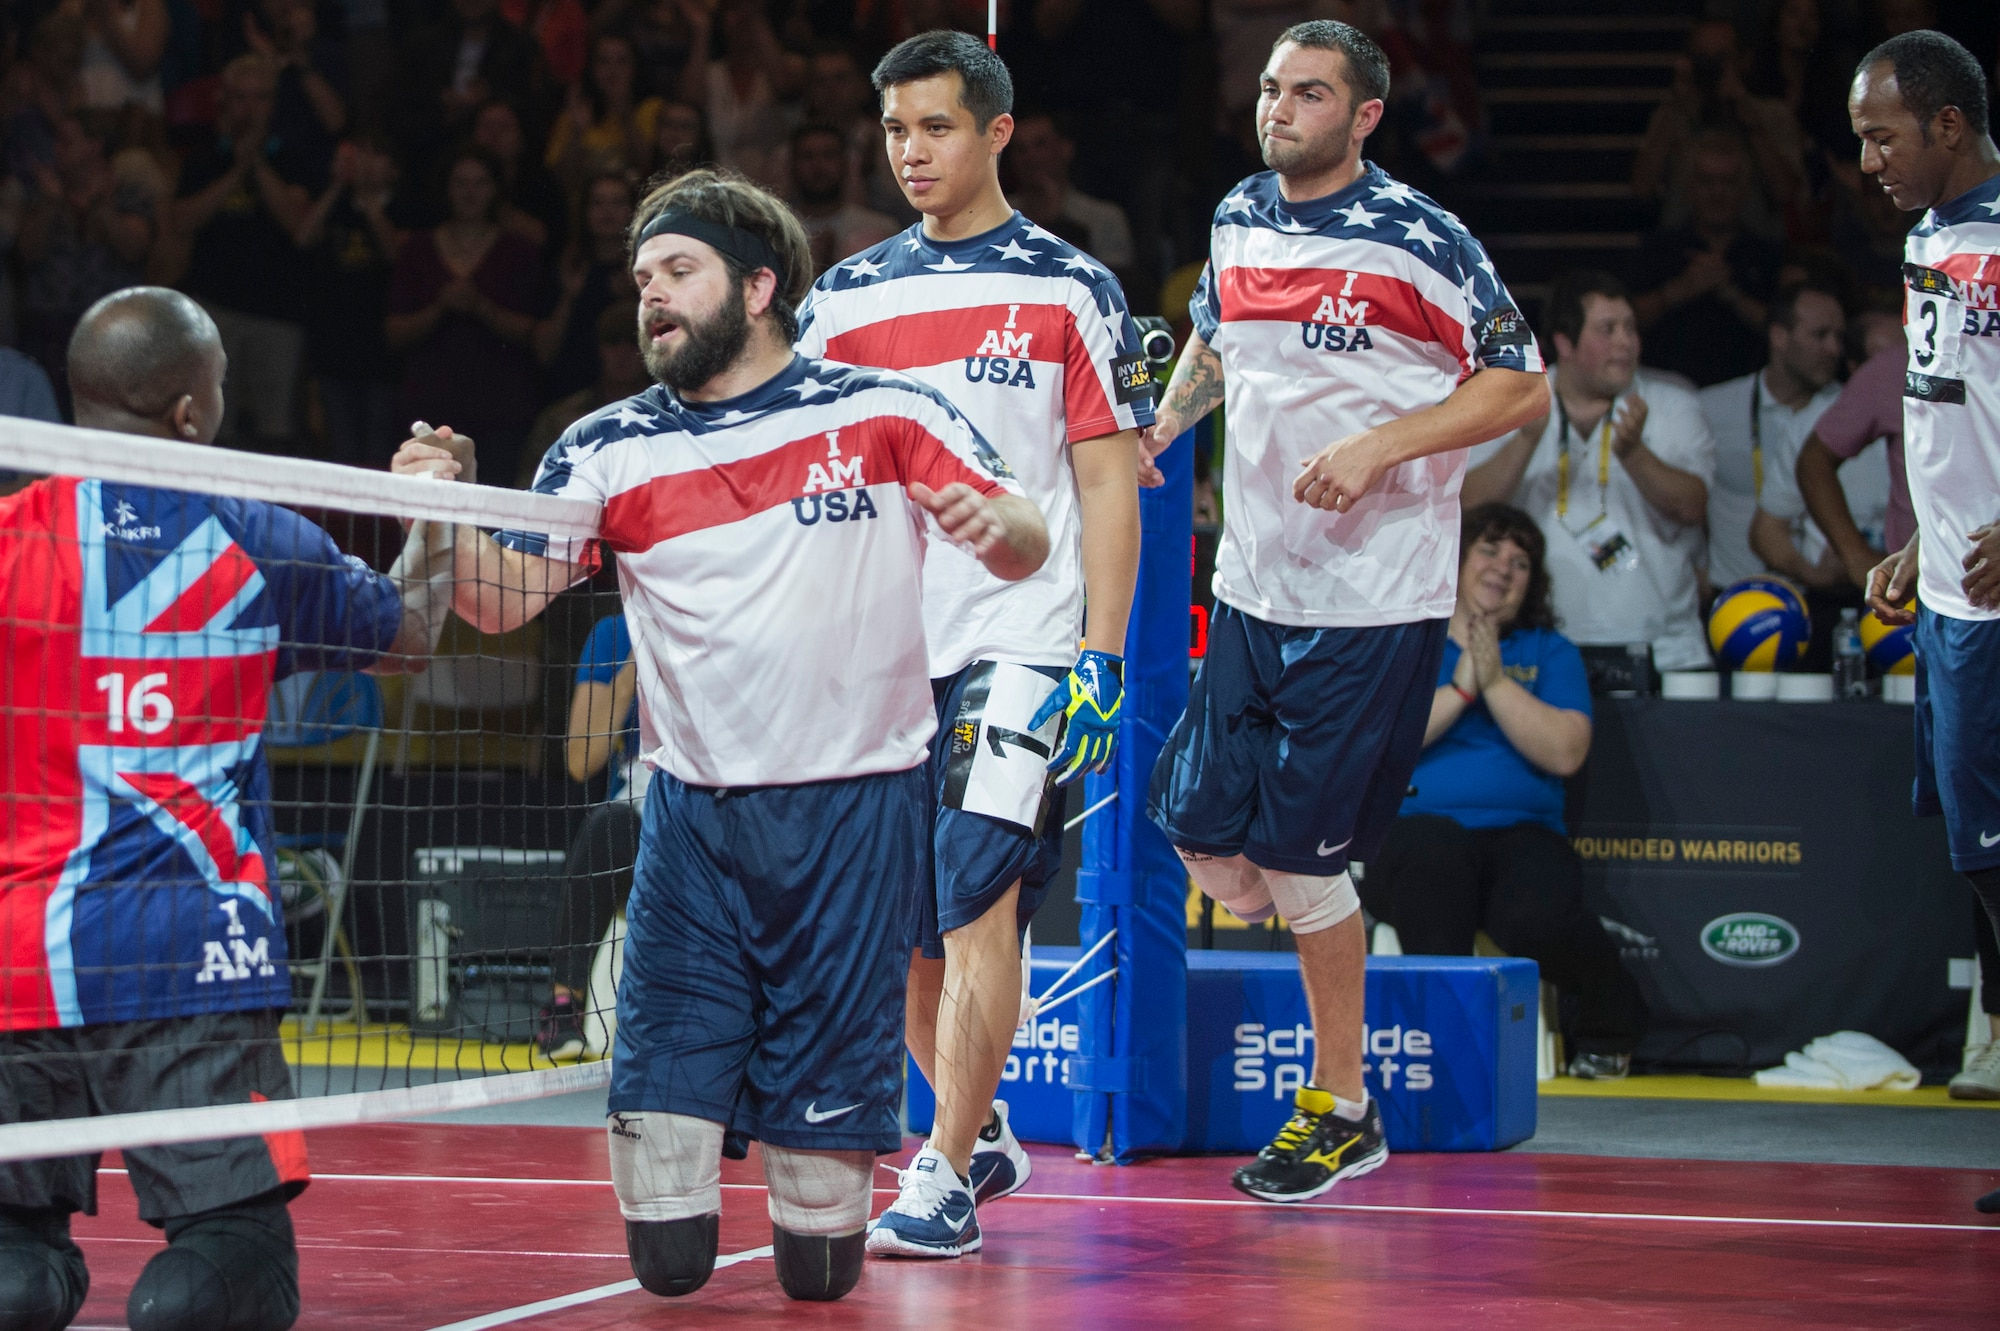 Navy Explosive Ordnance Disposal Technician 1st Class John Kremer and his U.S. teammates walk along the net to congratulate Great Britain, winners of the sitting volleyball event, at the inaugural Invictus Games Sept. 14, 2014, in London. Great Britain defeated the U.S. in a best-out-of-five match. The Invictus Games featured athletes competing in various Paralympic-style events, including swimming, track and field, seated volleyball, wheelchair basketball, and wheelchair rugby, among others. (U.S. Navy photo/Mass Communication Specialist 1st Class (SW) Mark Logico)